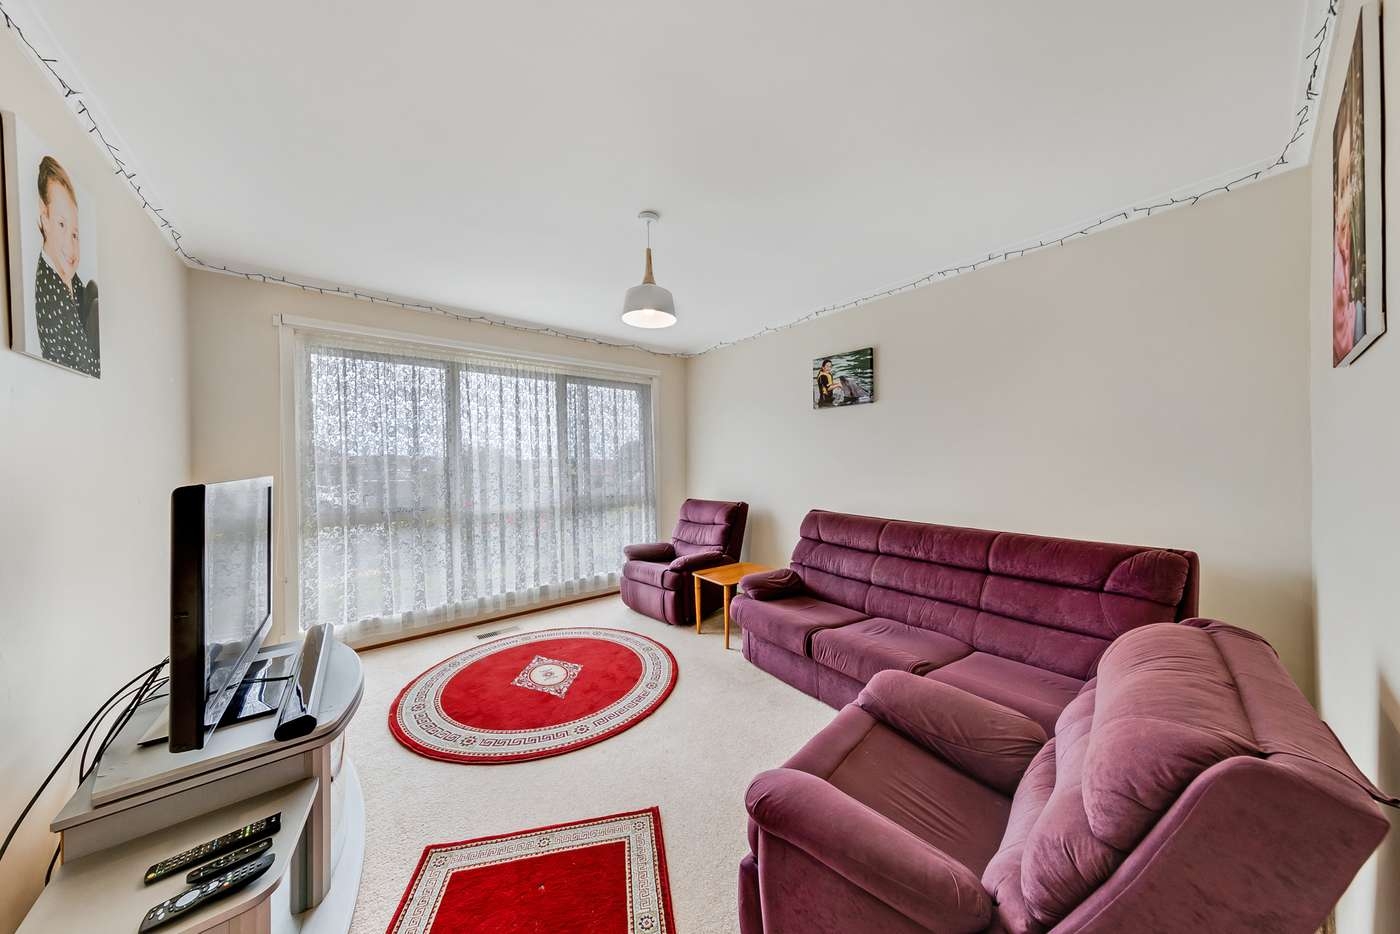 Fifth view of Homely house listing, 7 Lawson Court, Warrnambool VIC 3280